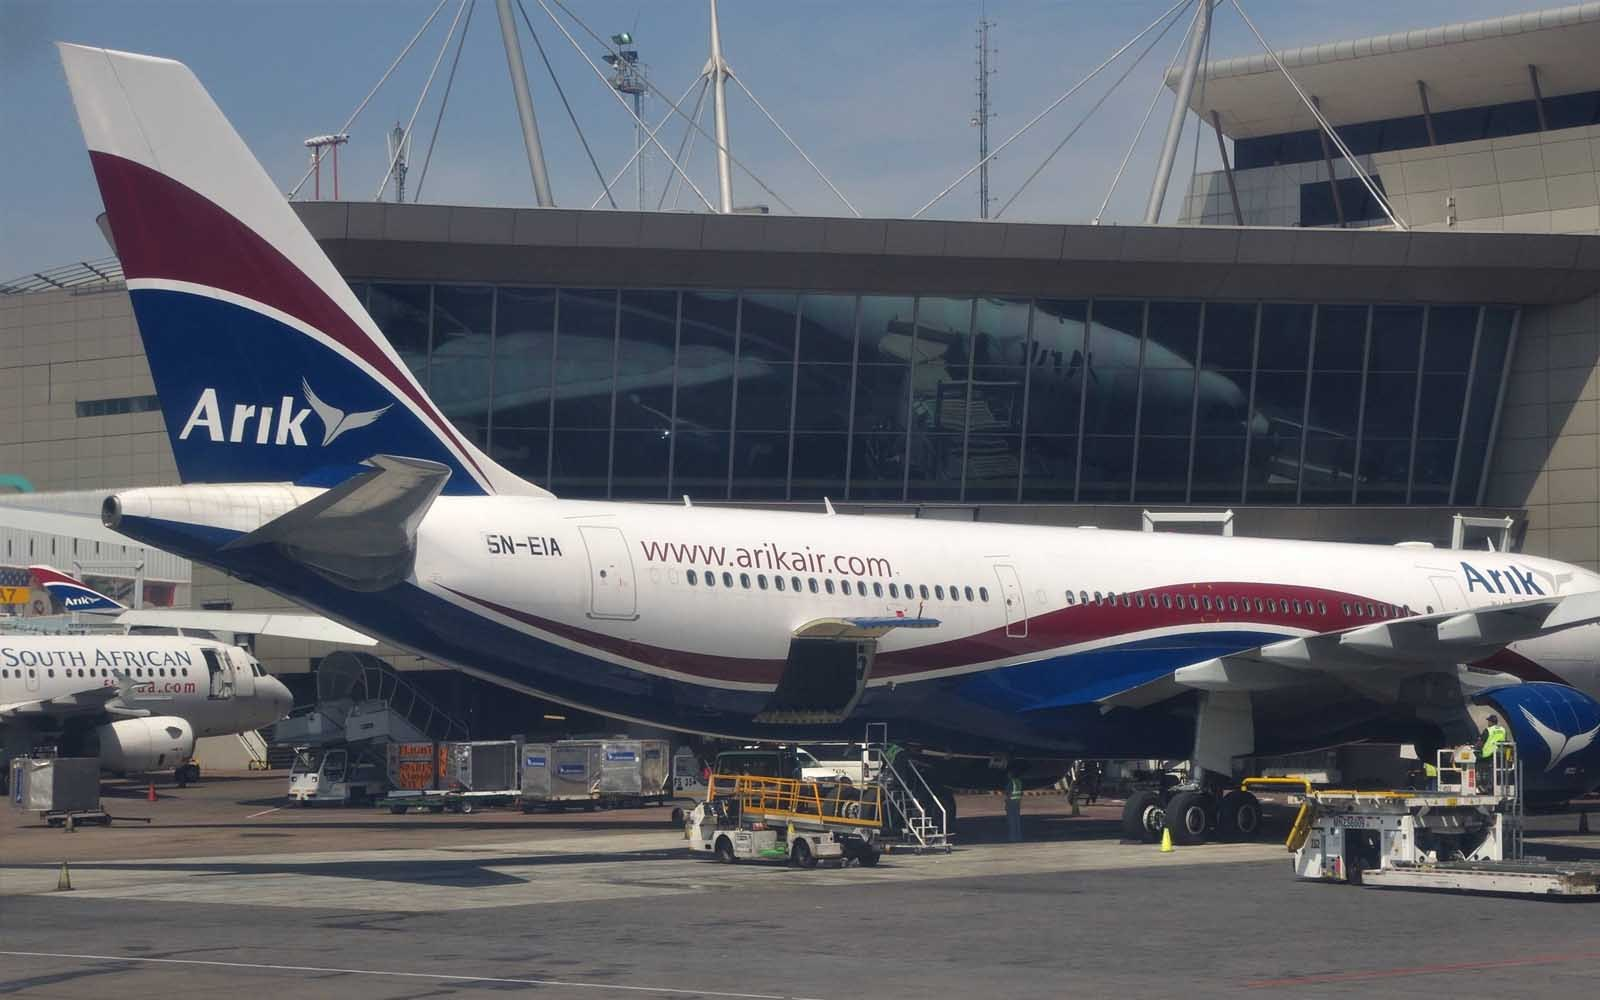 An Arik air aeroplane at Murtala Muhammed International Airport Lagos.